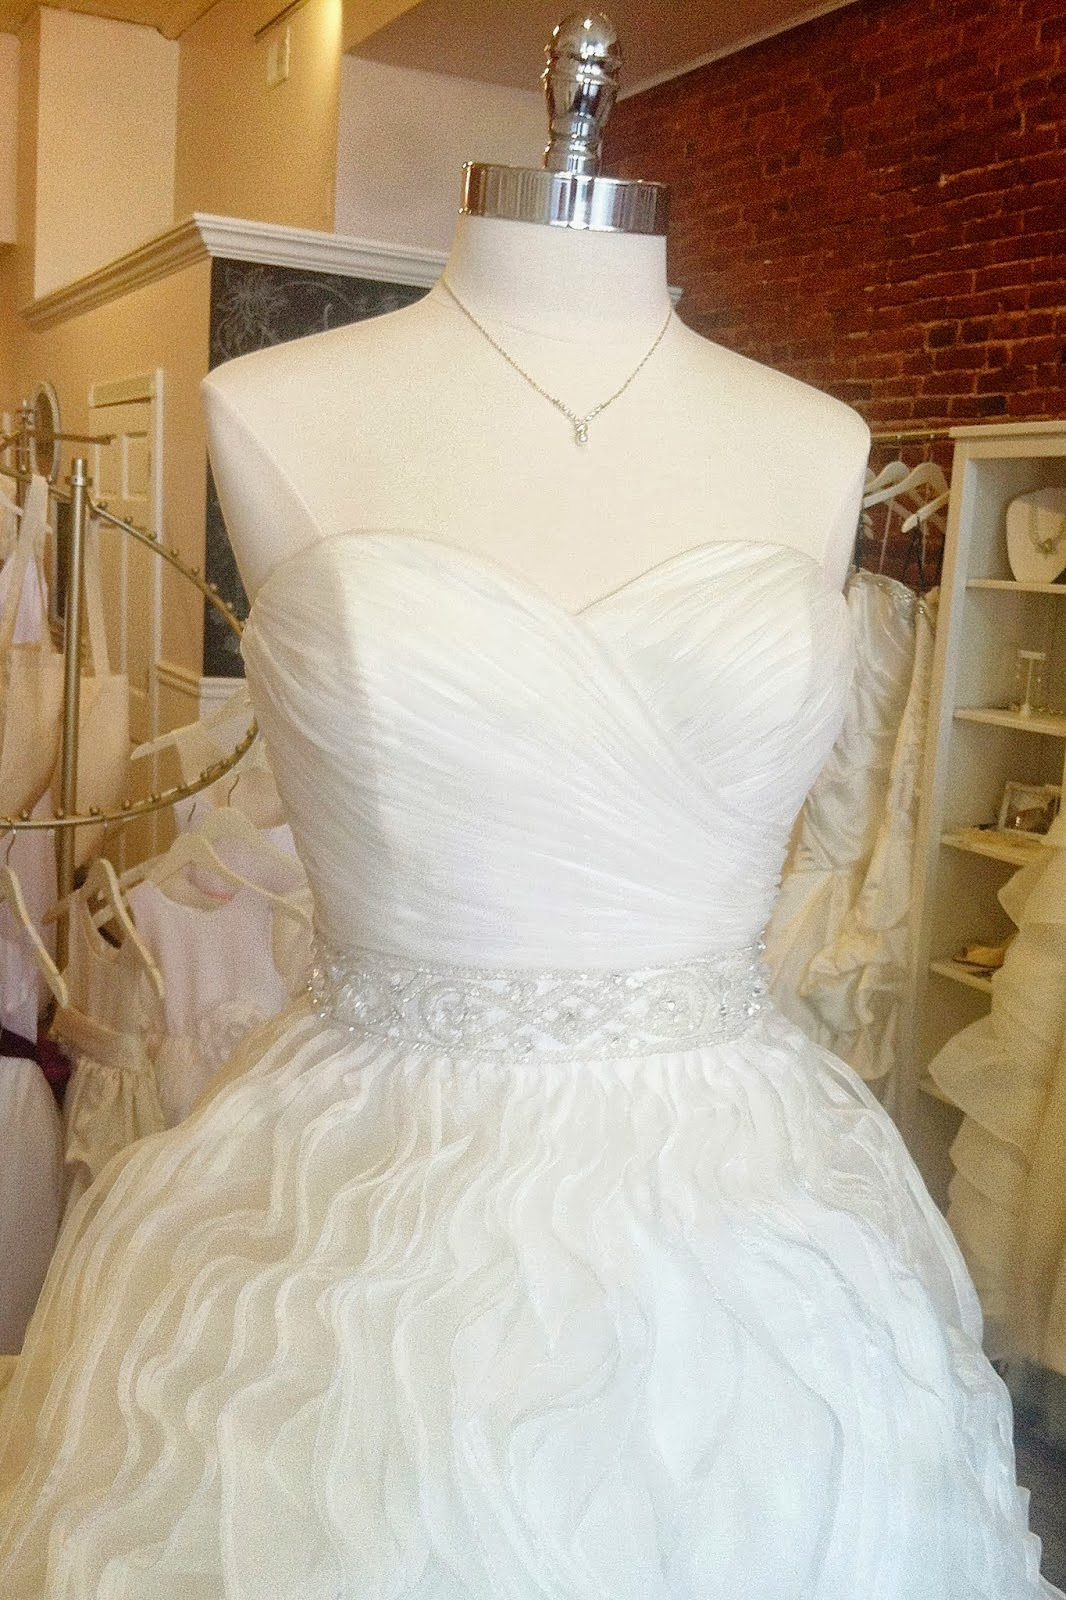 Sneak Peek Of The New 2014 Ariel Gown From Alfred Angelo Disneys Fairy Tale Wedding Collection